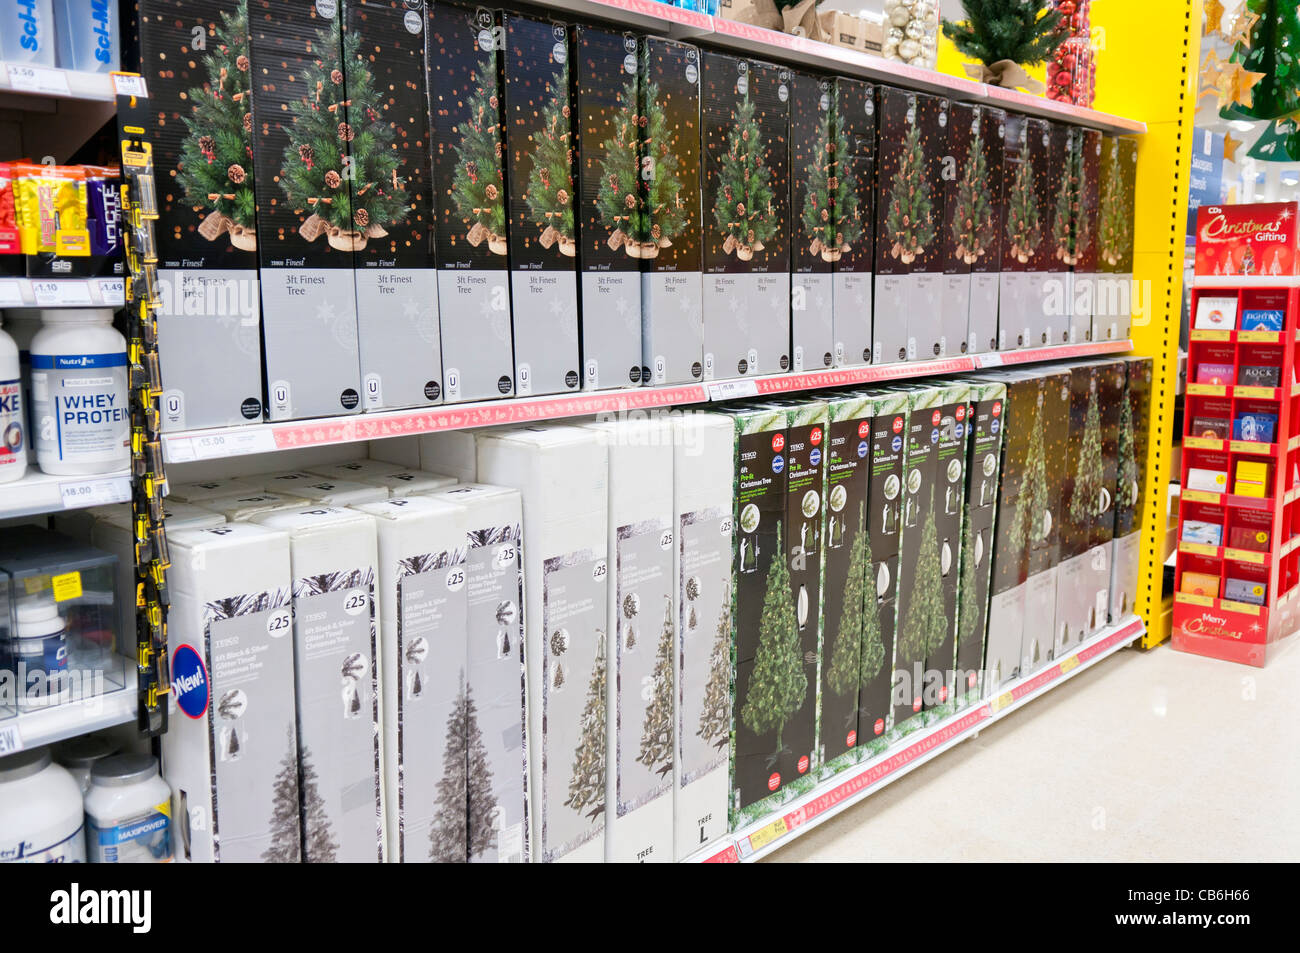 Christmas Trees For Sale On Shelves In A Tesco Store Stock